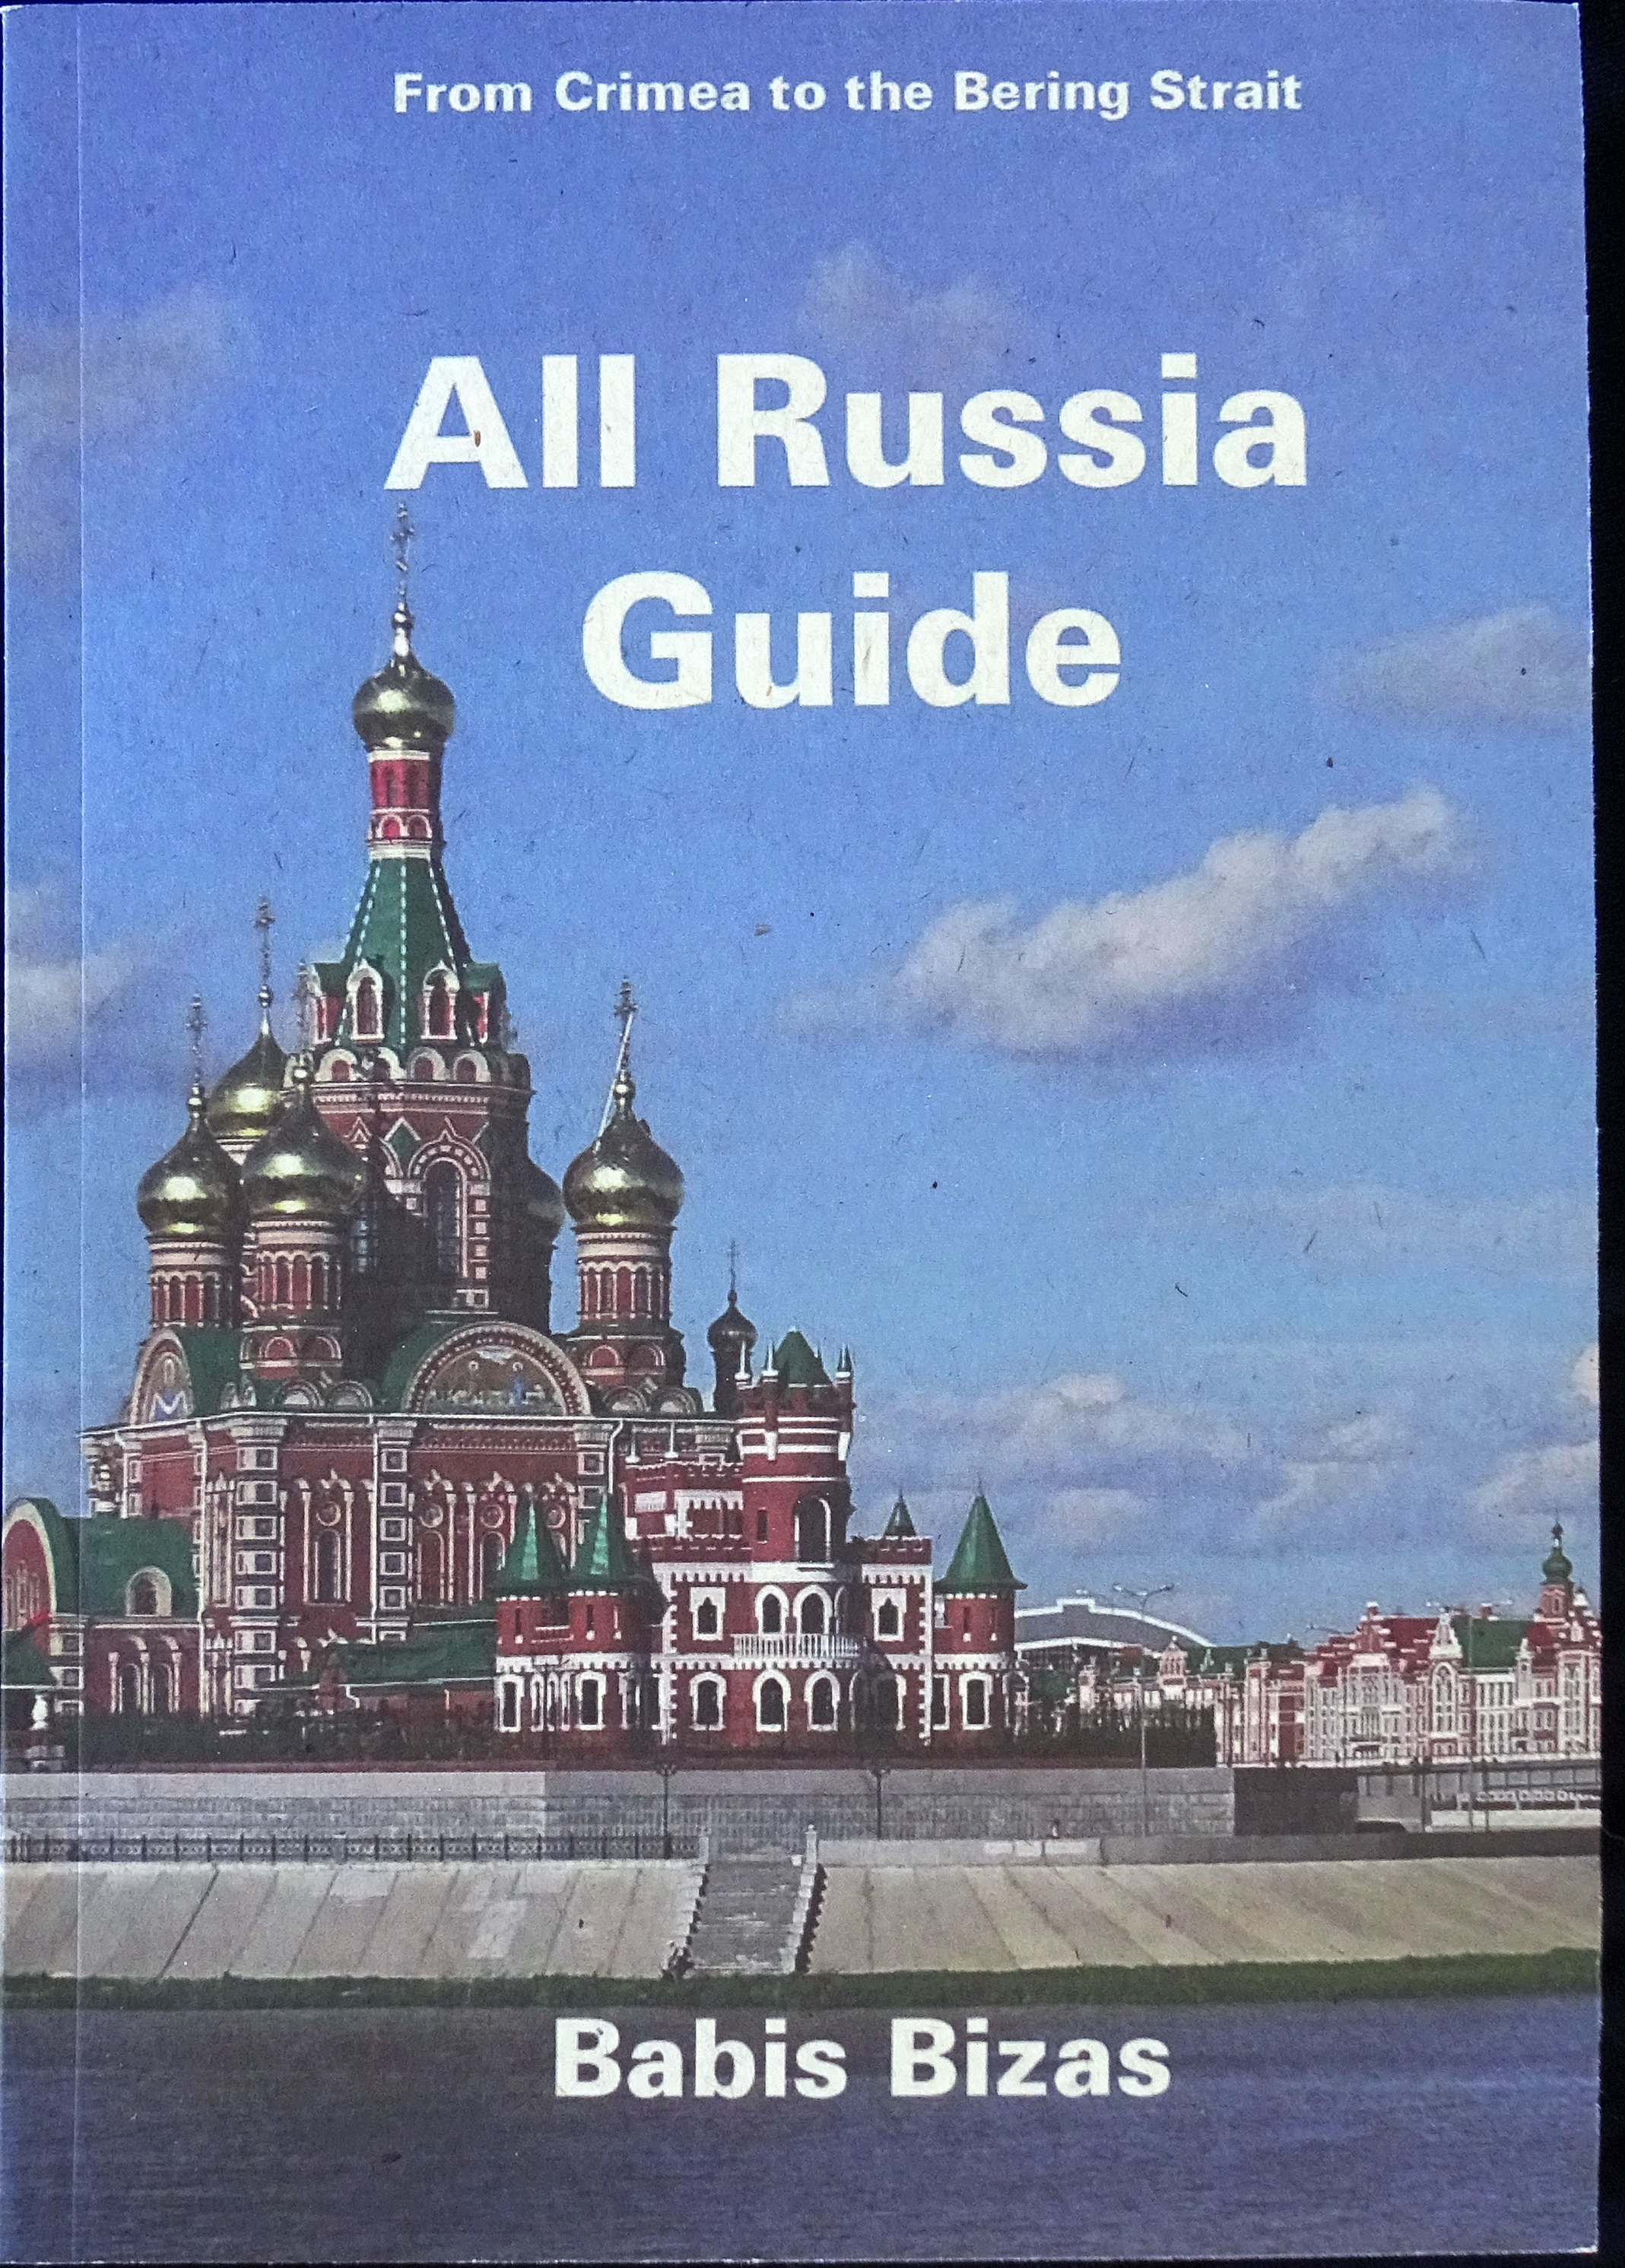 All Russia Guide